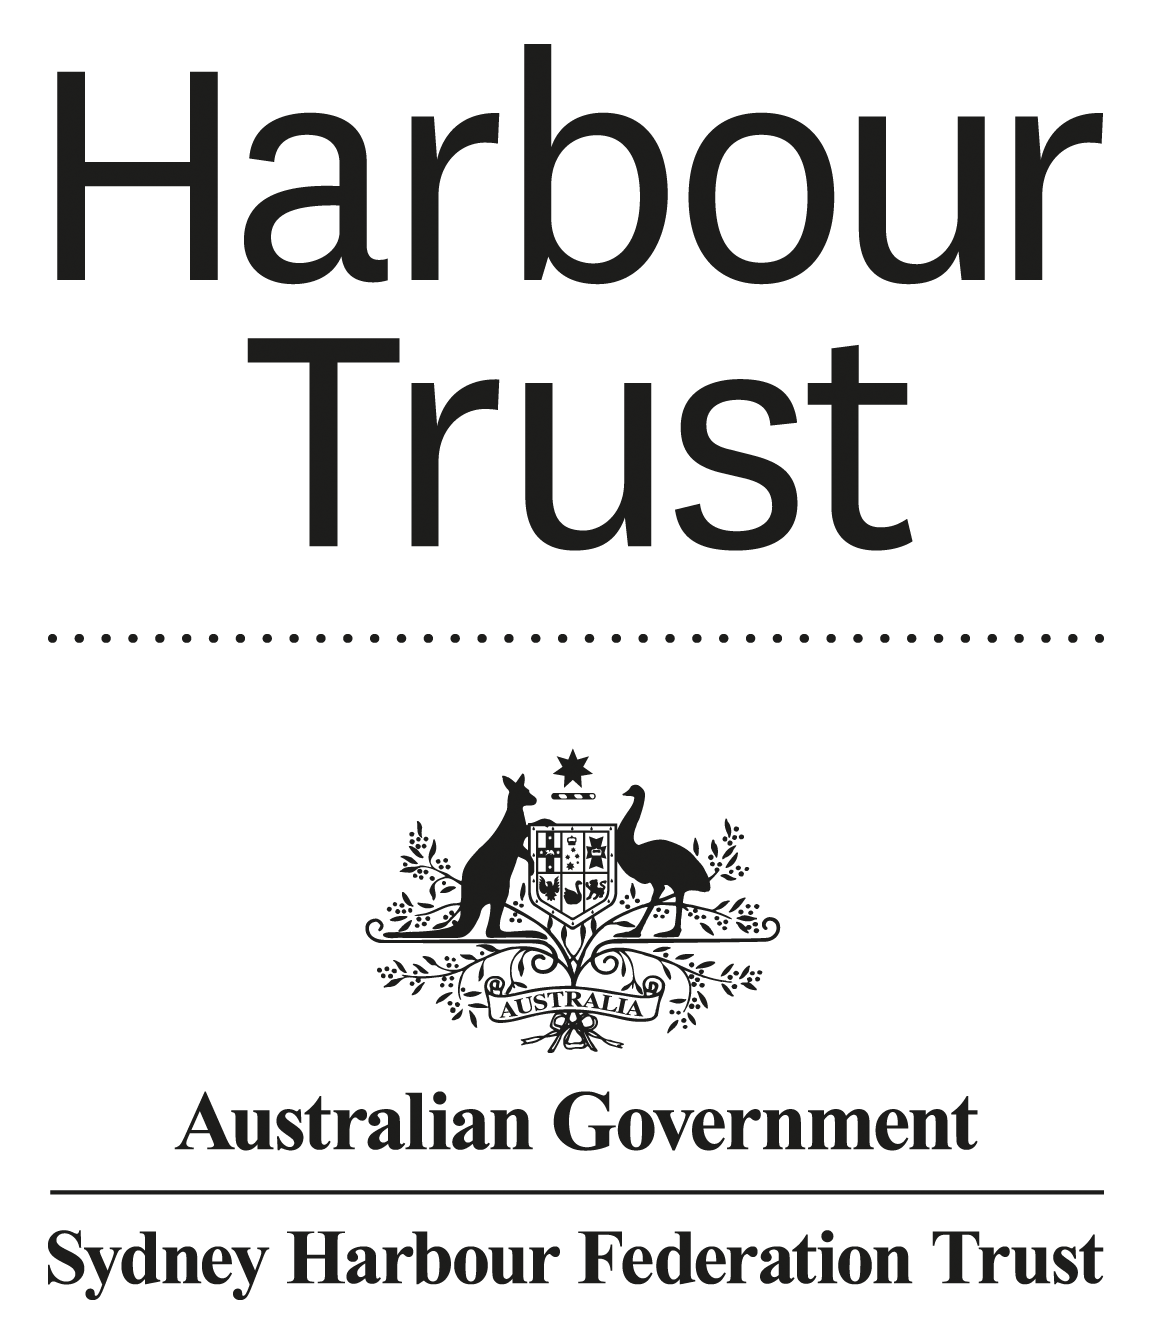 Sydney Harbour Federation Trust